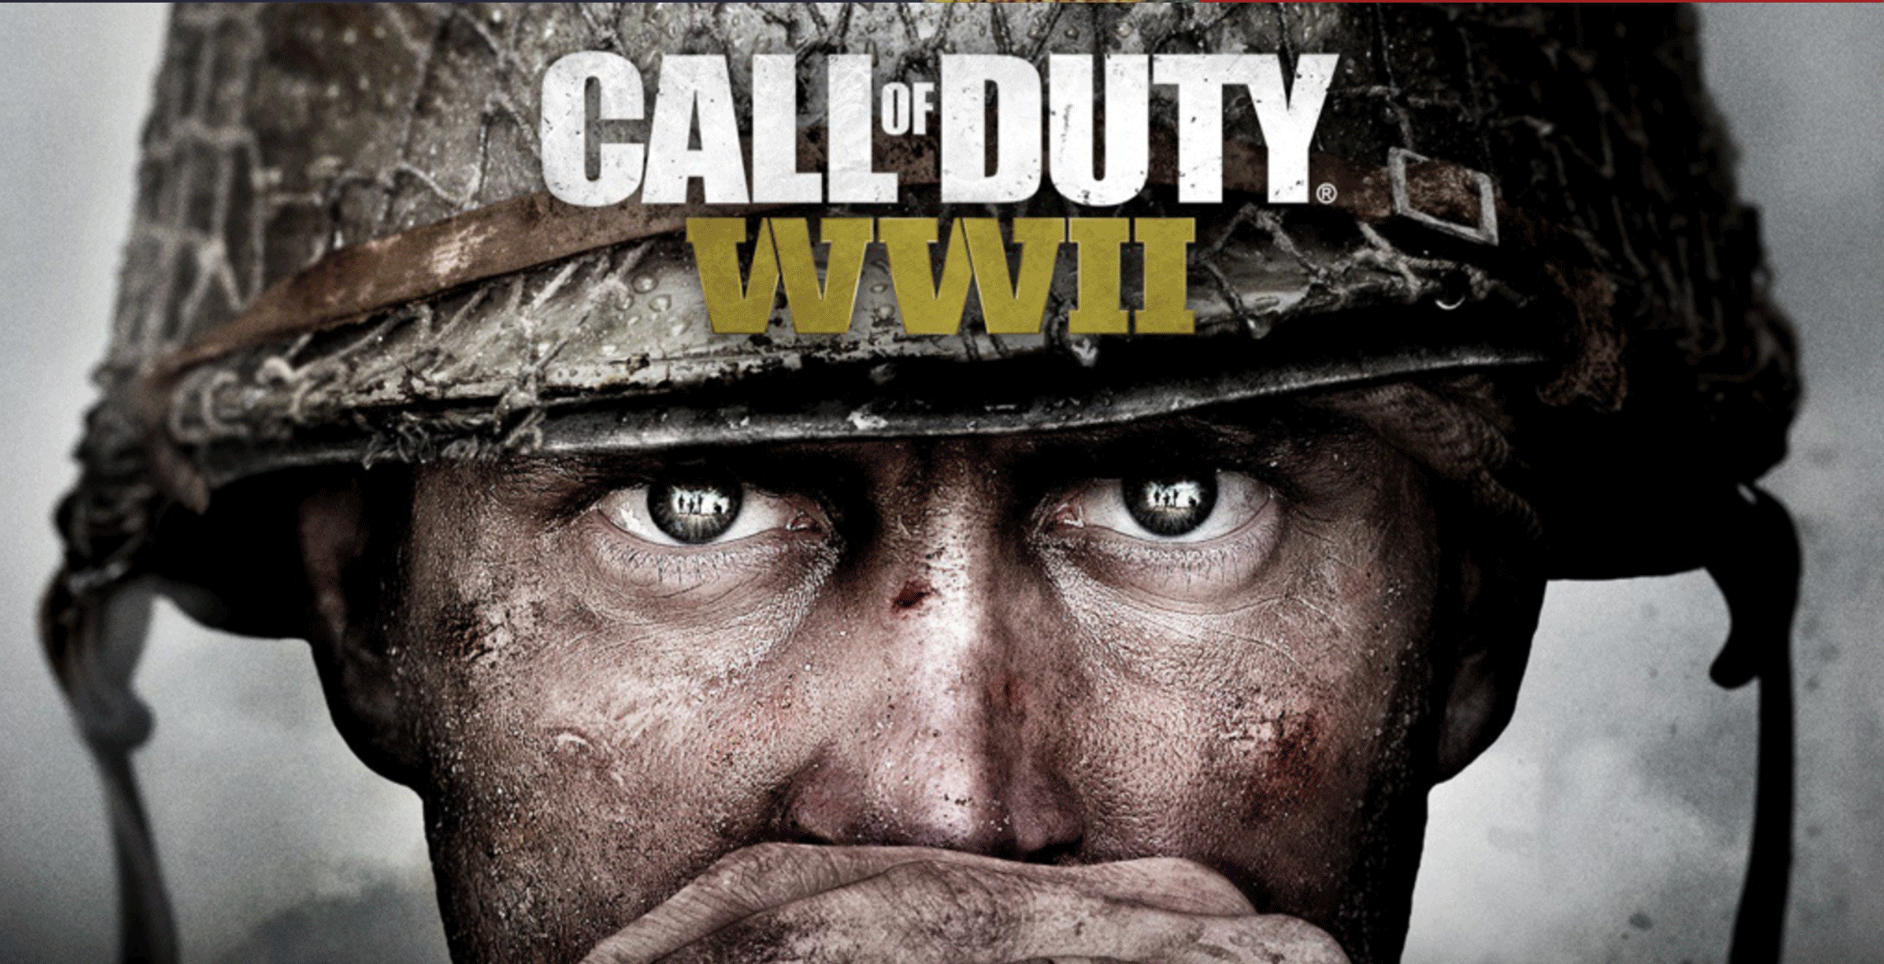 Call of Duty: WWII is on sale! Multiplayer, beta, campaign details.